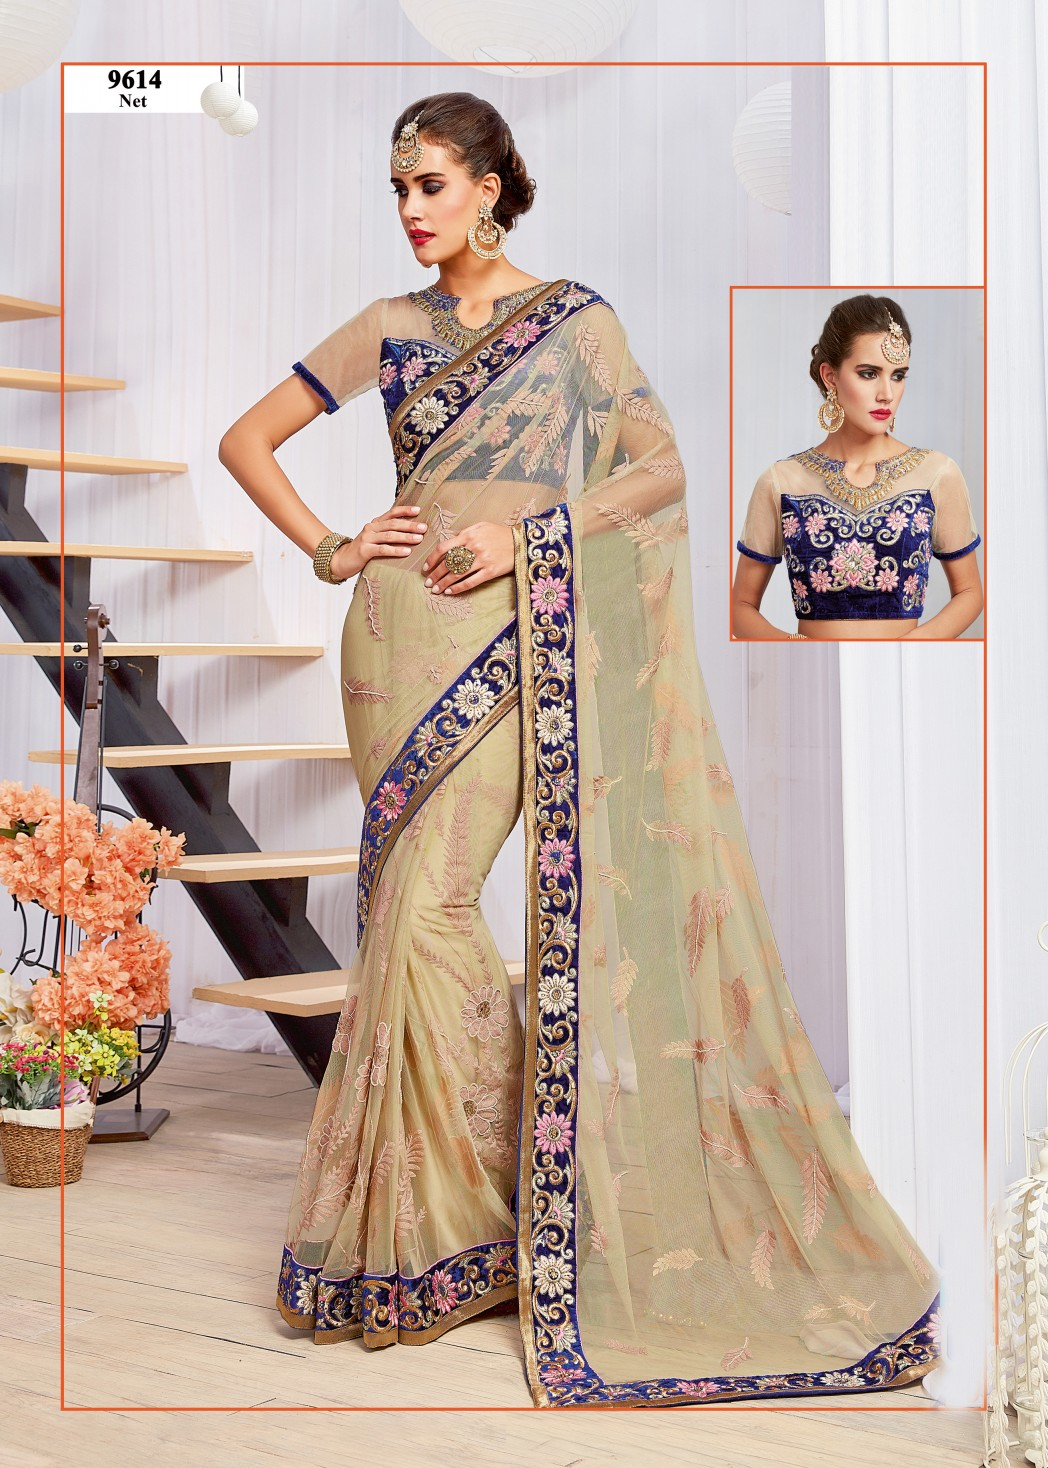 Sarees Sale Online Awesome Collection Mahotsav Sarees At Best Price Ever